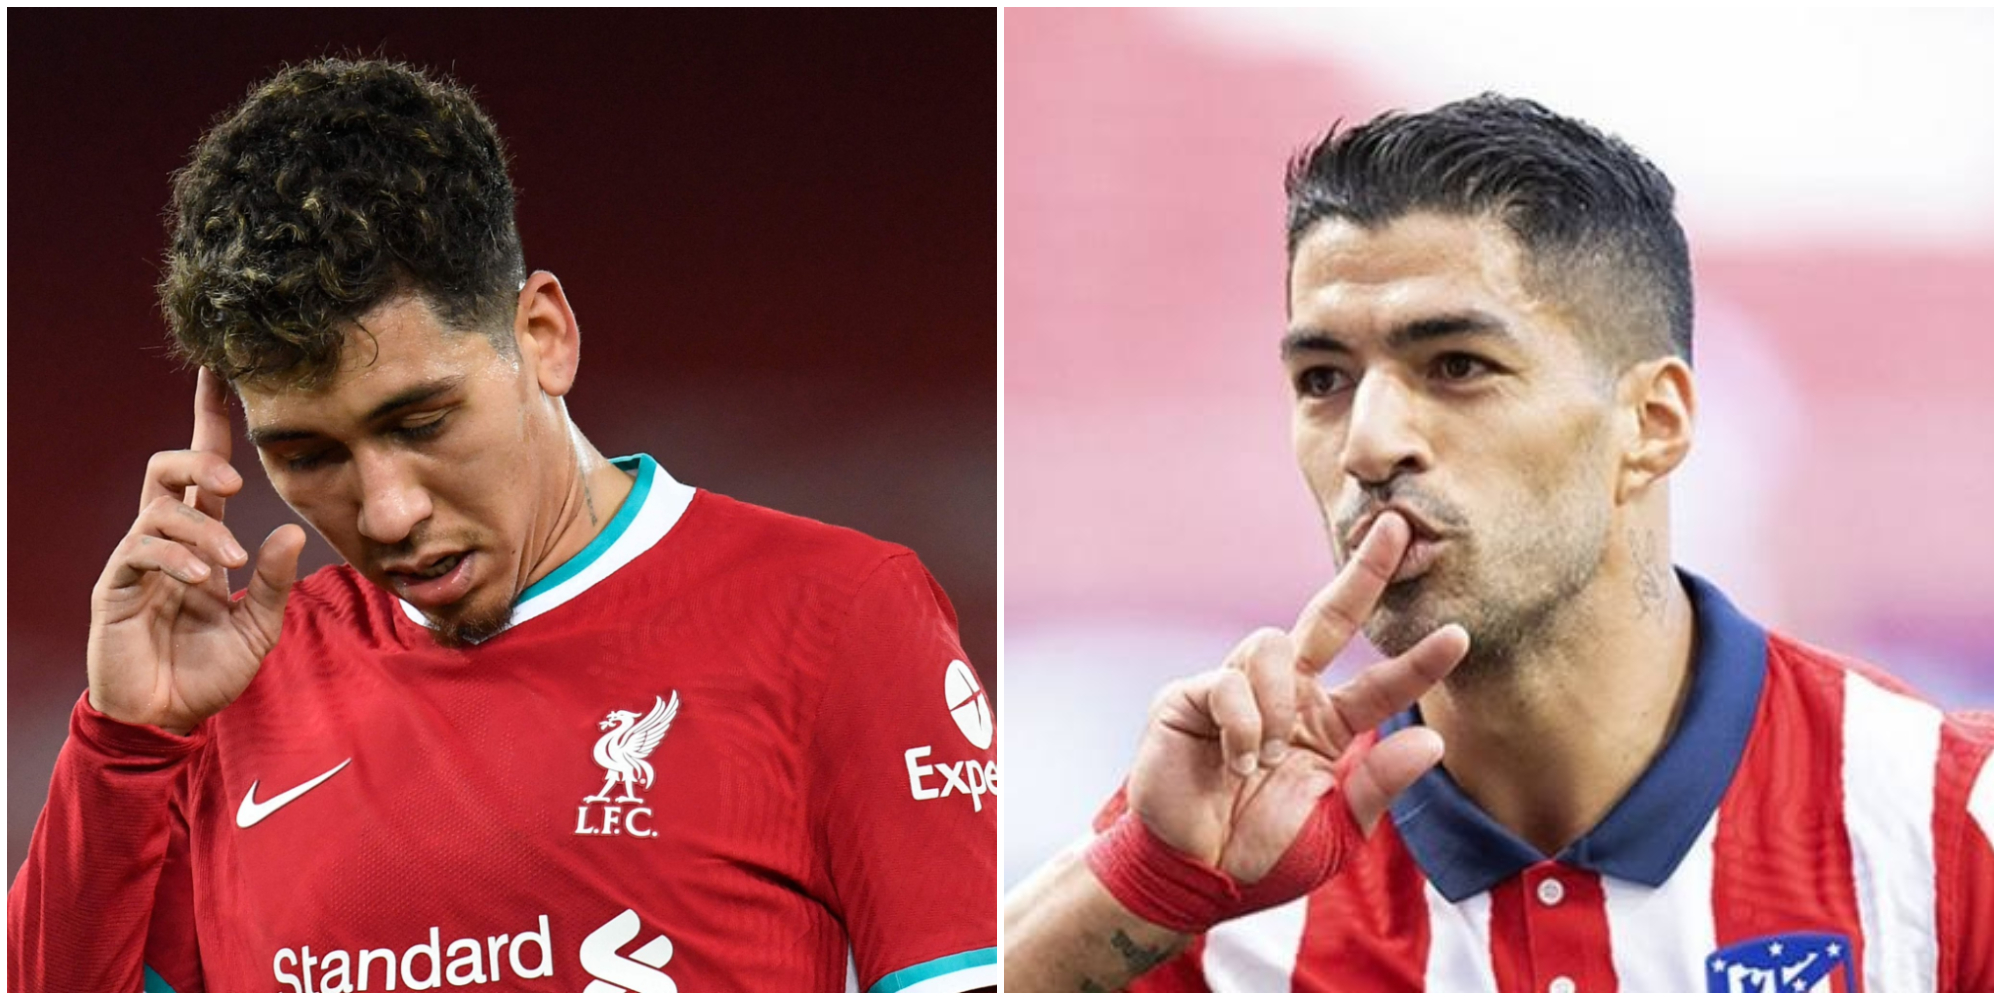 New report claims Atletico Madrid eyeing Firmino as Suarez replacement should ex-Red return to Liverpool – El Gol Digital